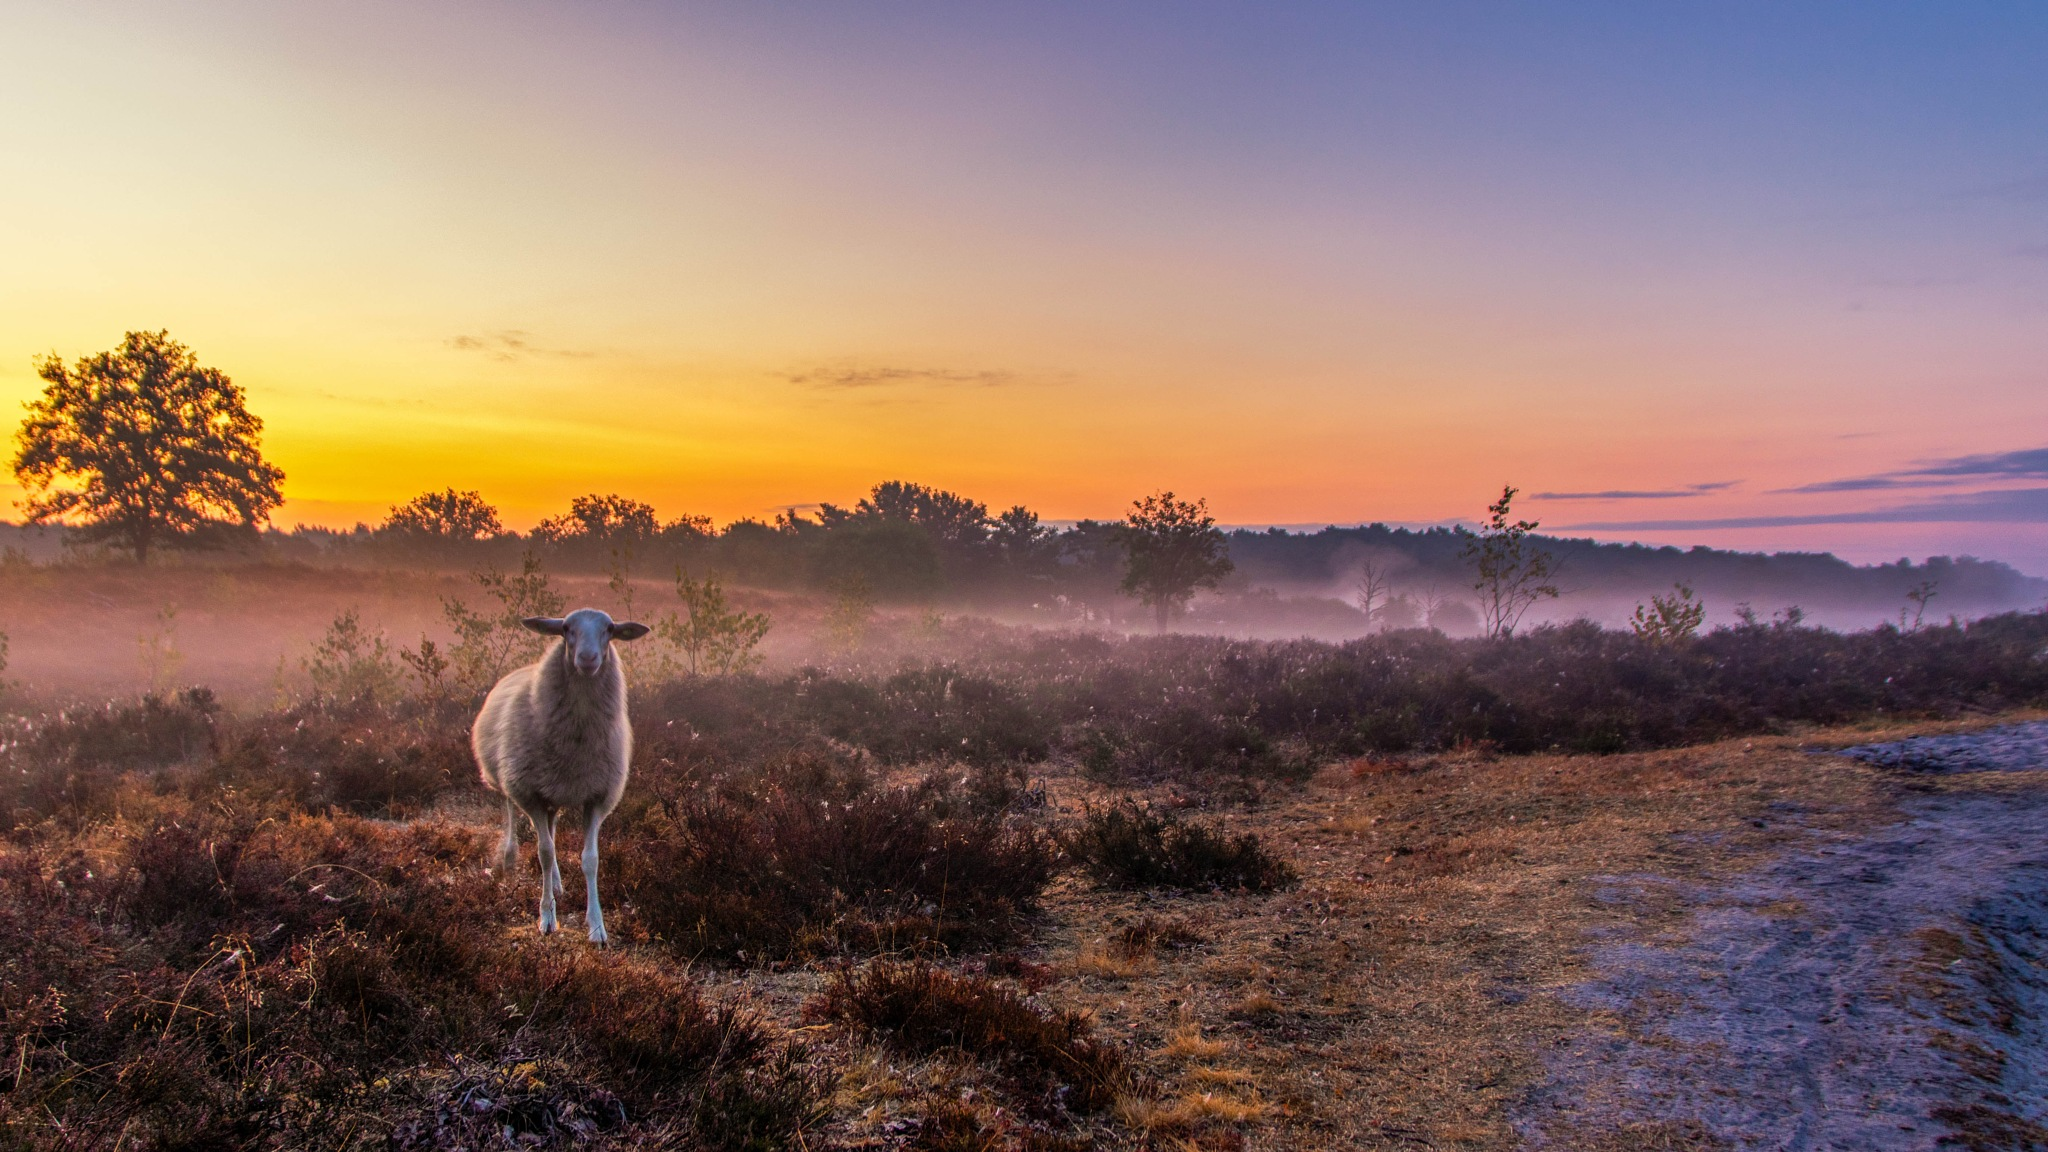 foggy sunrise by Theo Hermsen